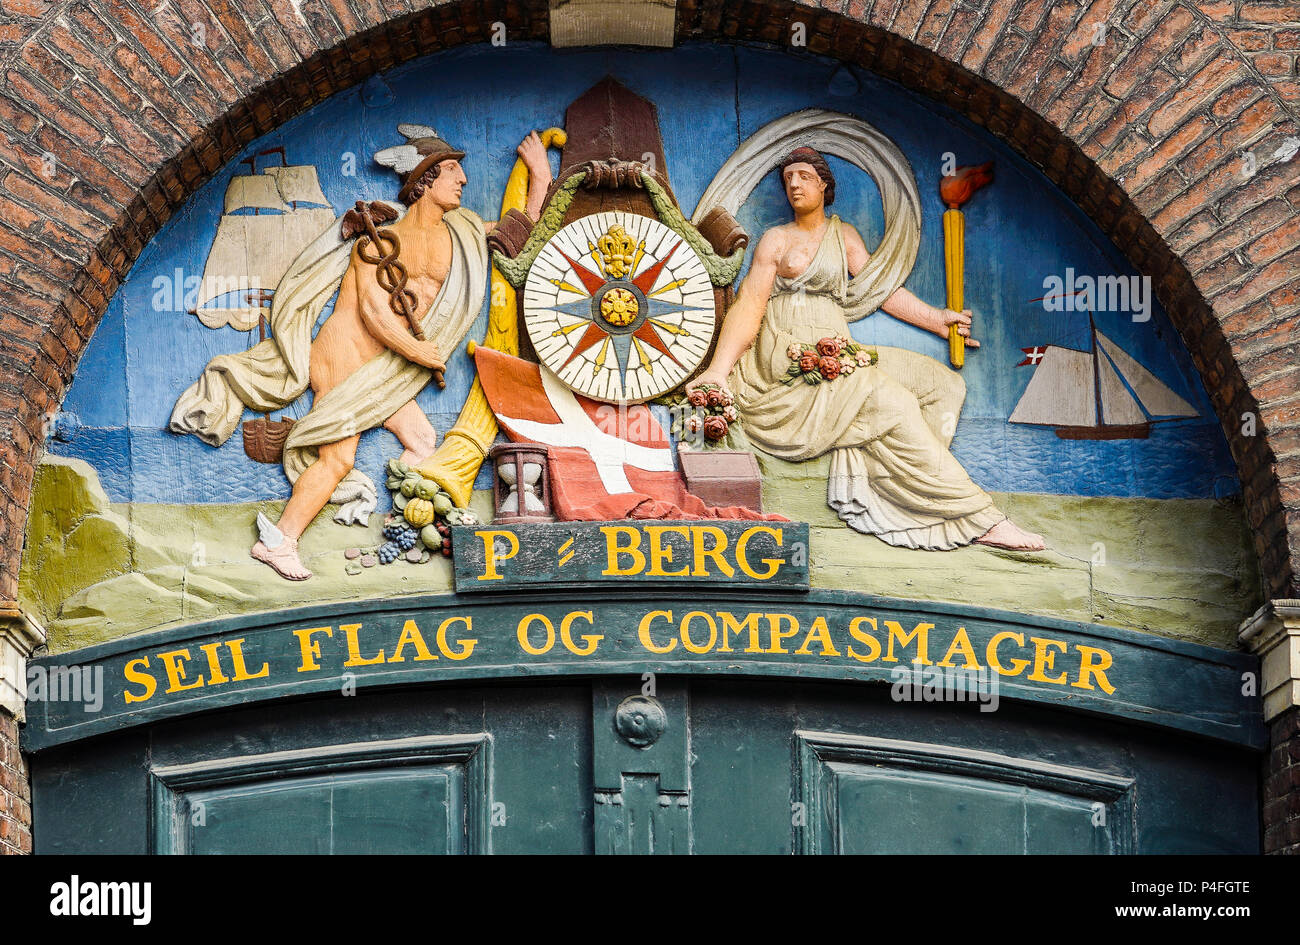 Old sign on wall, sail, flag and compass maker, Nyhavn (New Harbour) - Stock Image